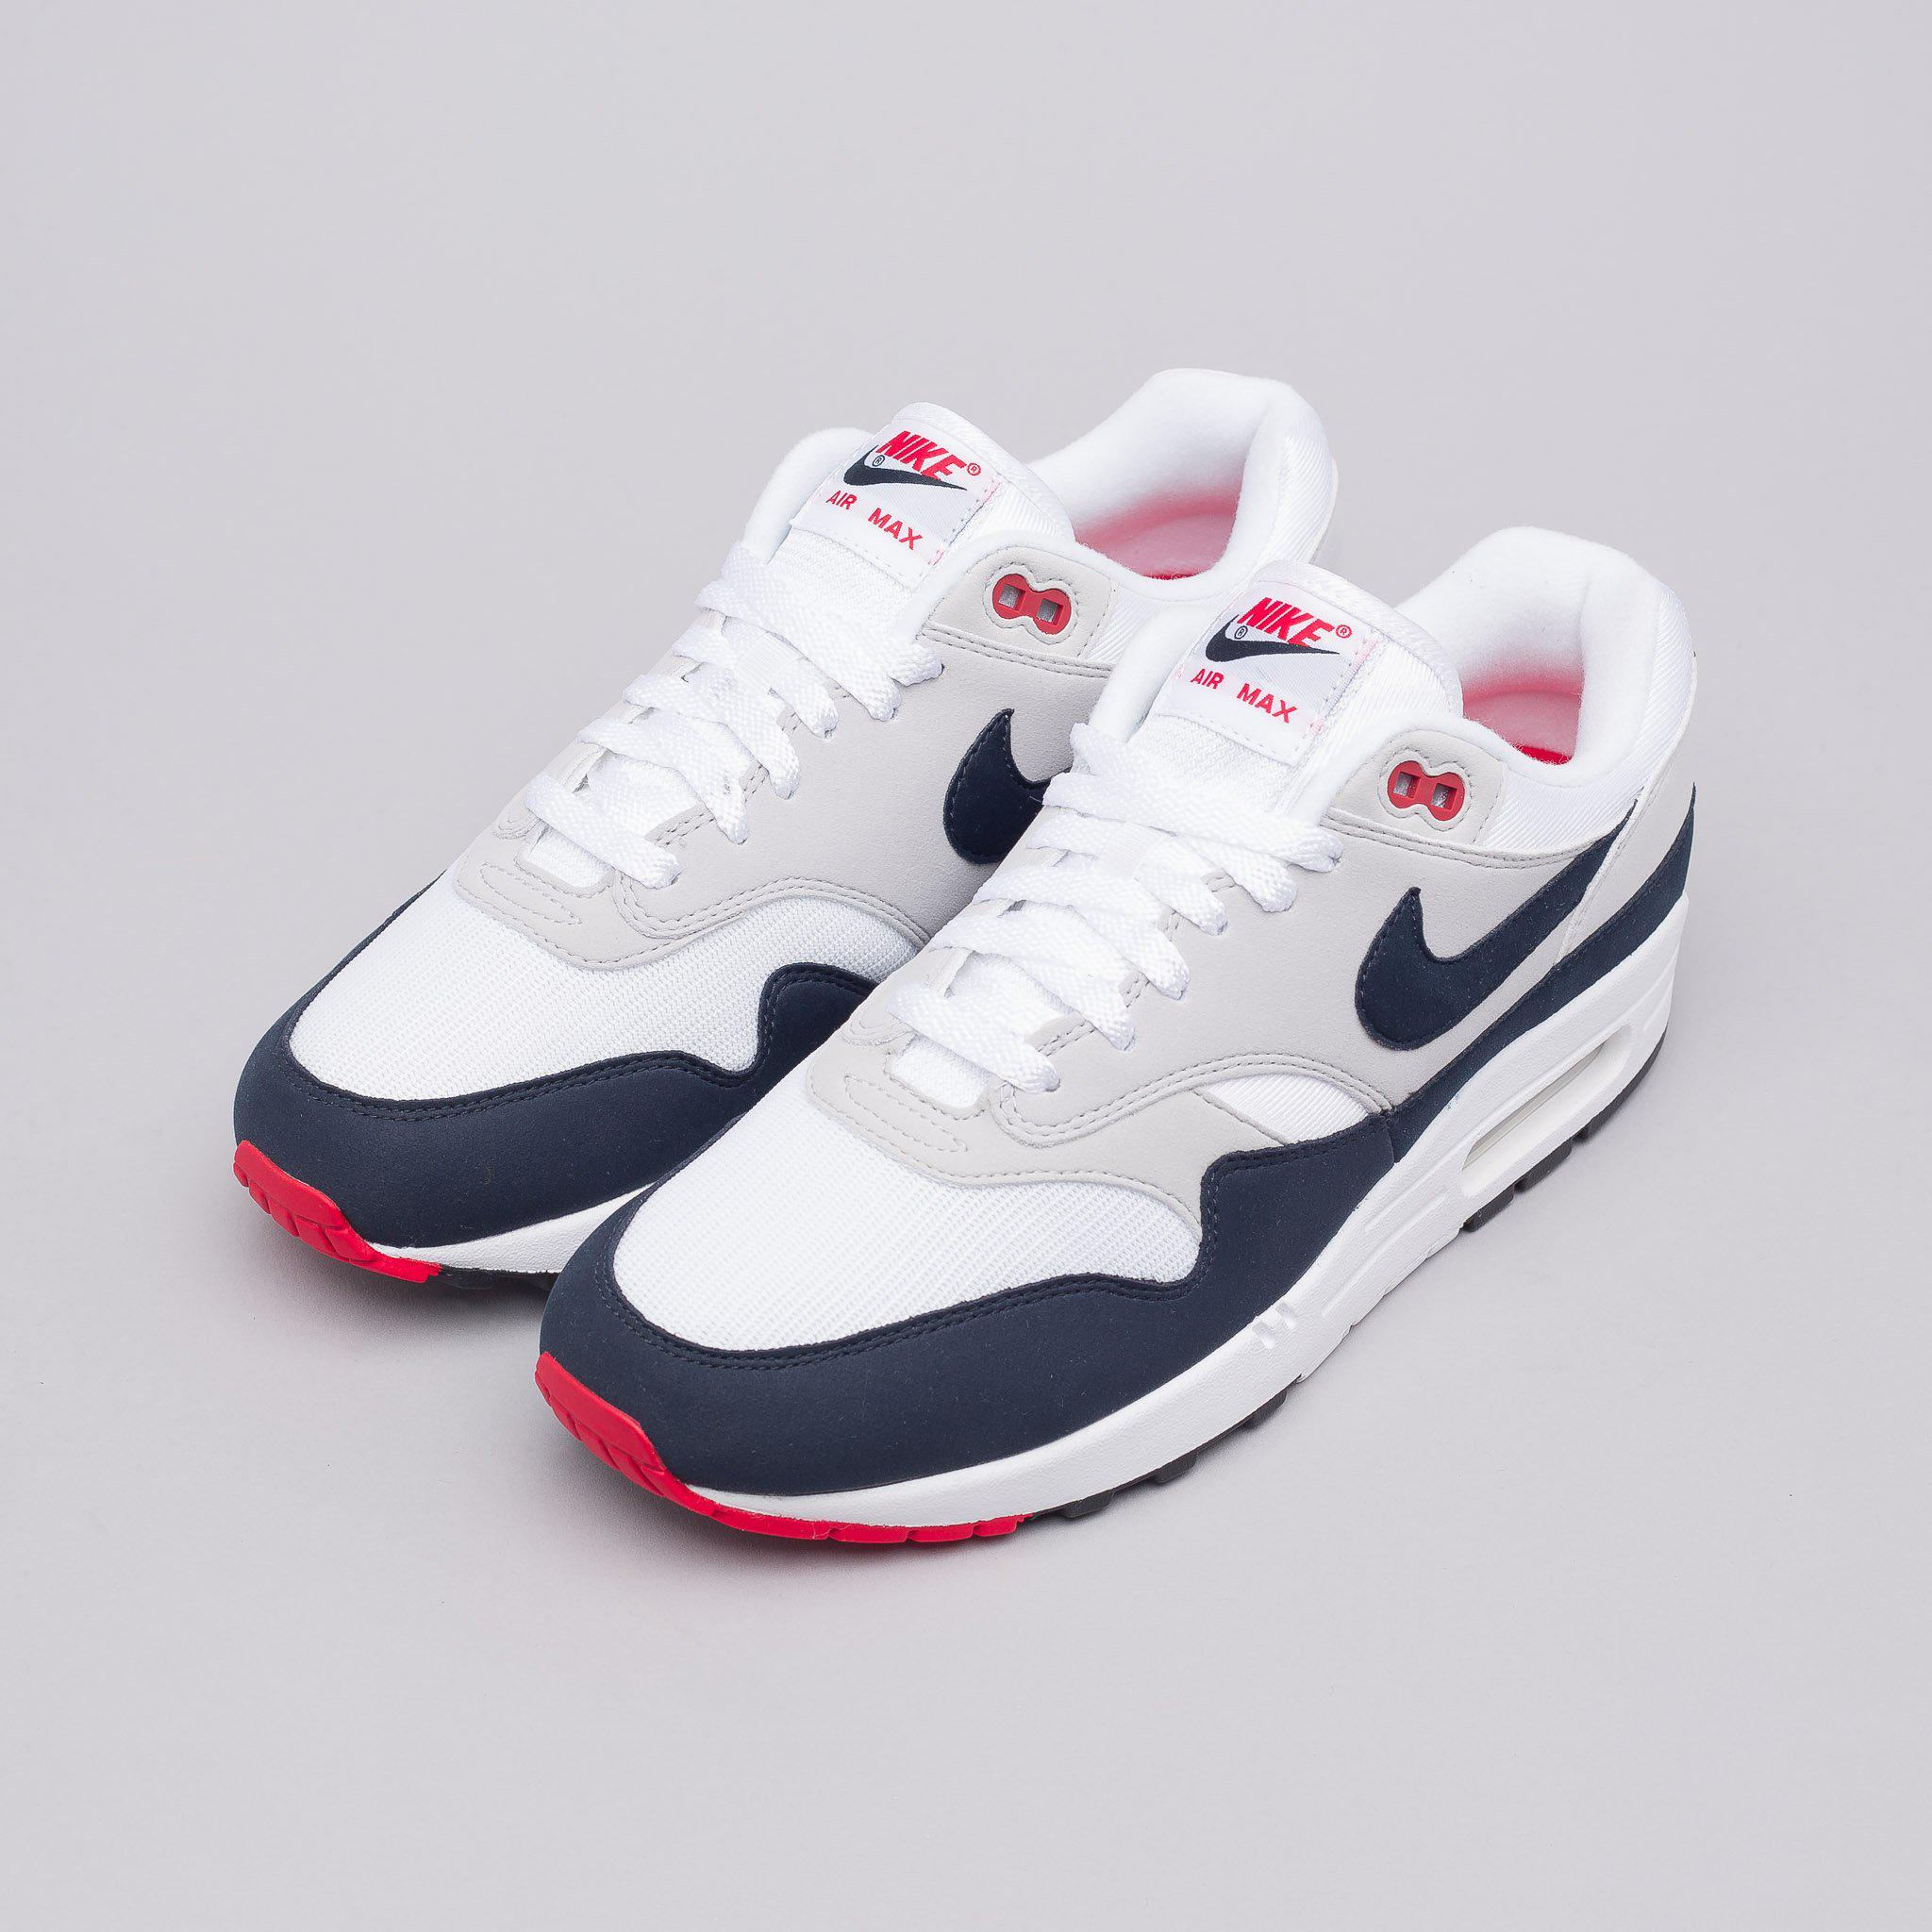 Air Max 1 Anniversary OG Obsidian : Sneakers